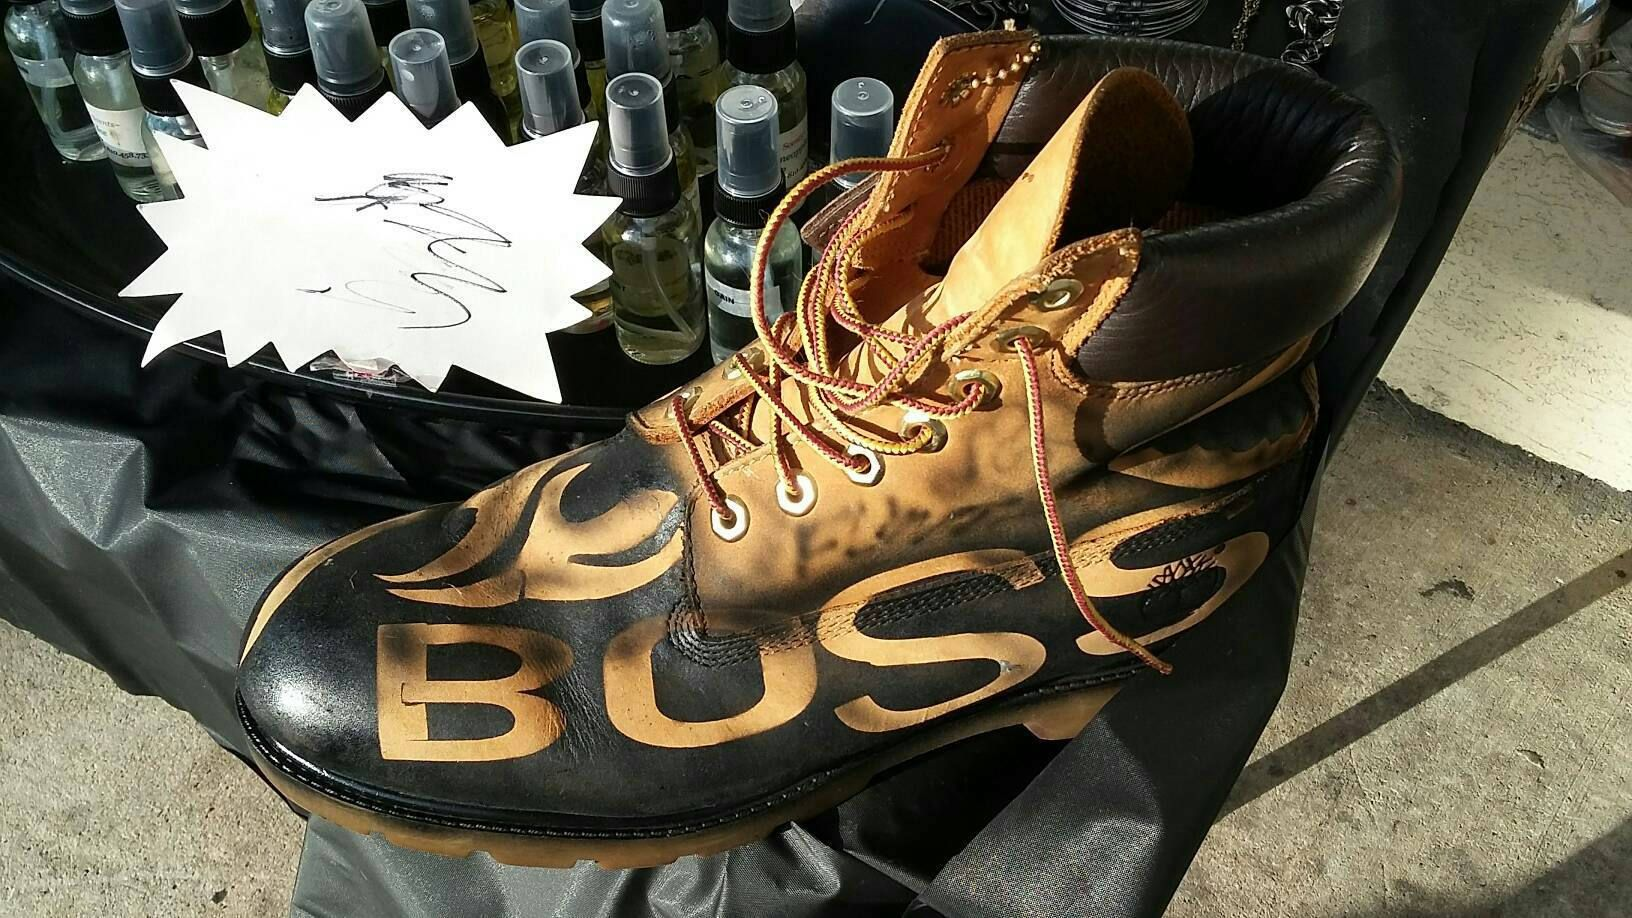 airbrush Timberlands Boss boots one of